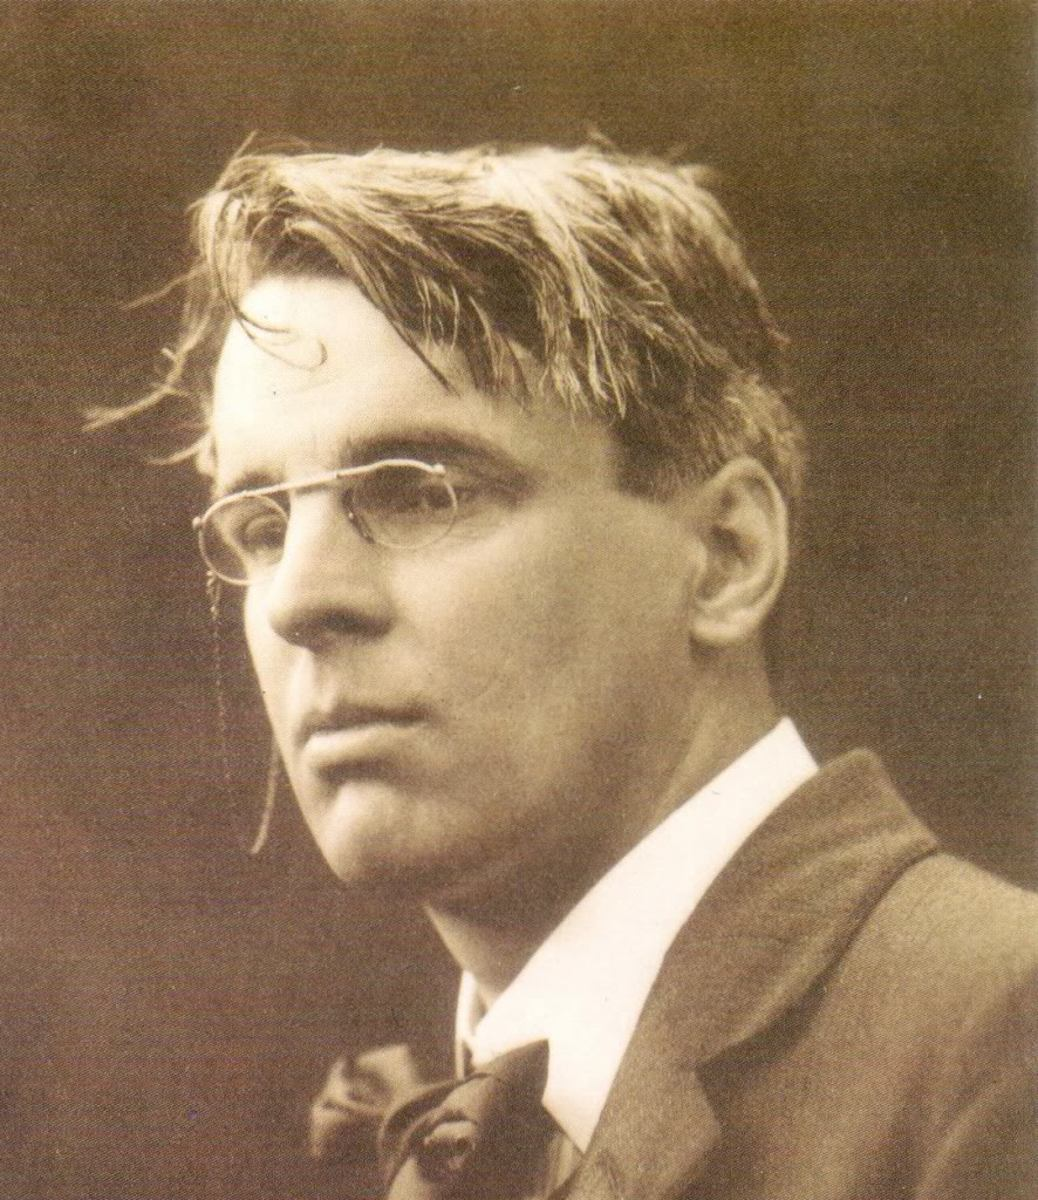 William Butler Yeats (13 June 1865 – 28 January 1939)